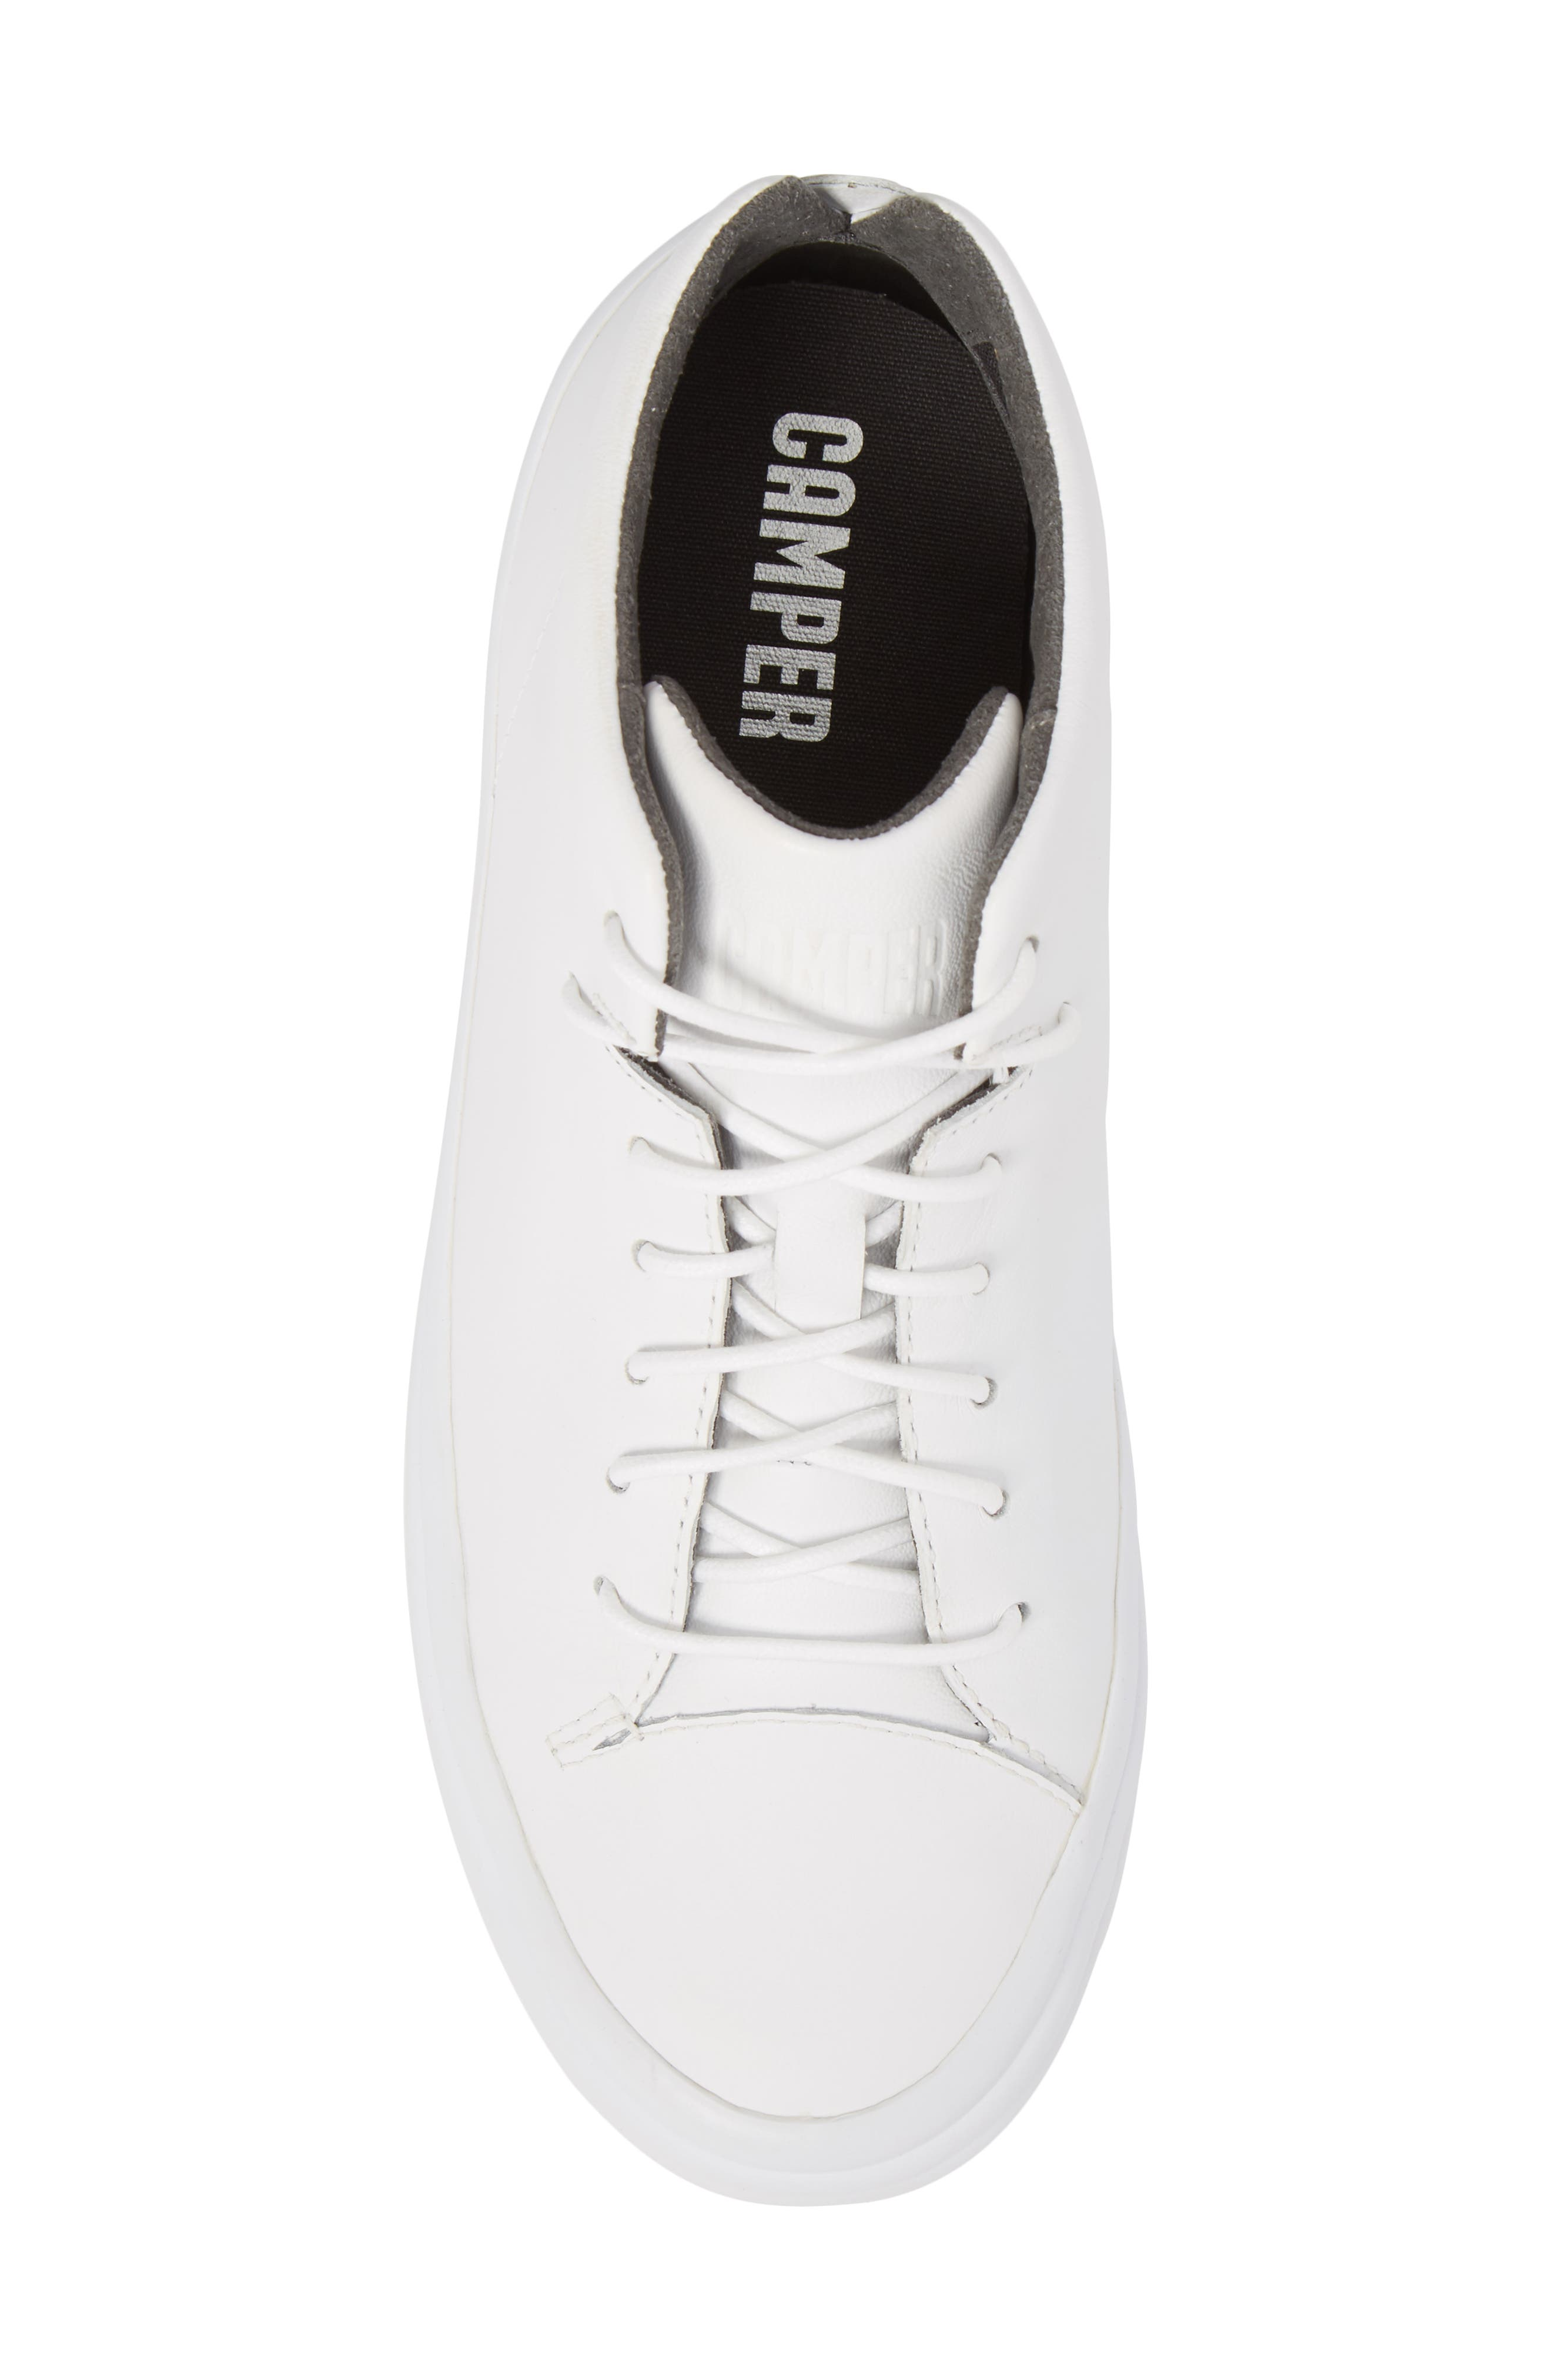 Hoops Mid Top Sneaker,                             Alternate thumbnail 5, color,                             White Natural Leather